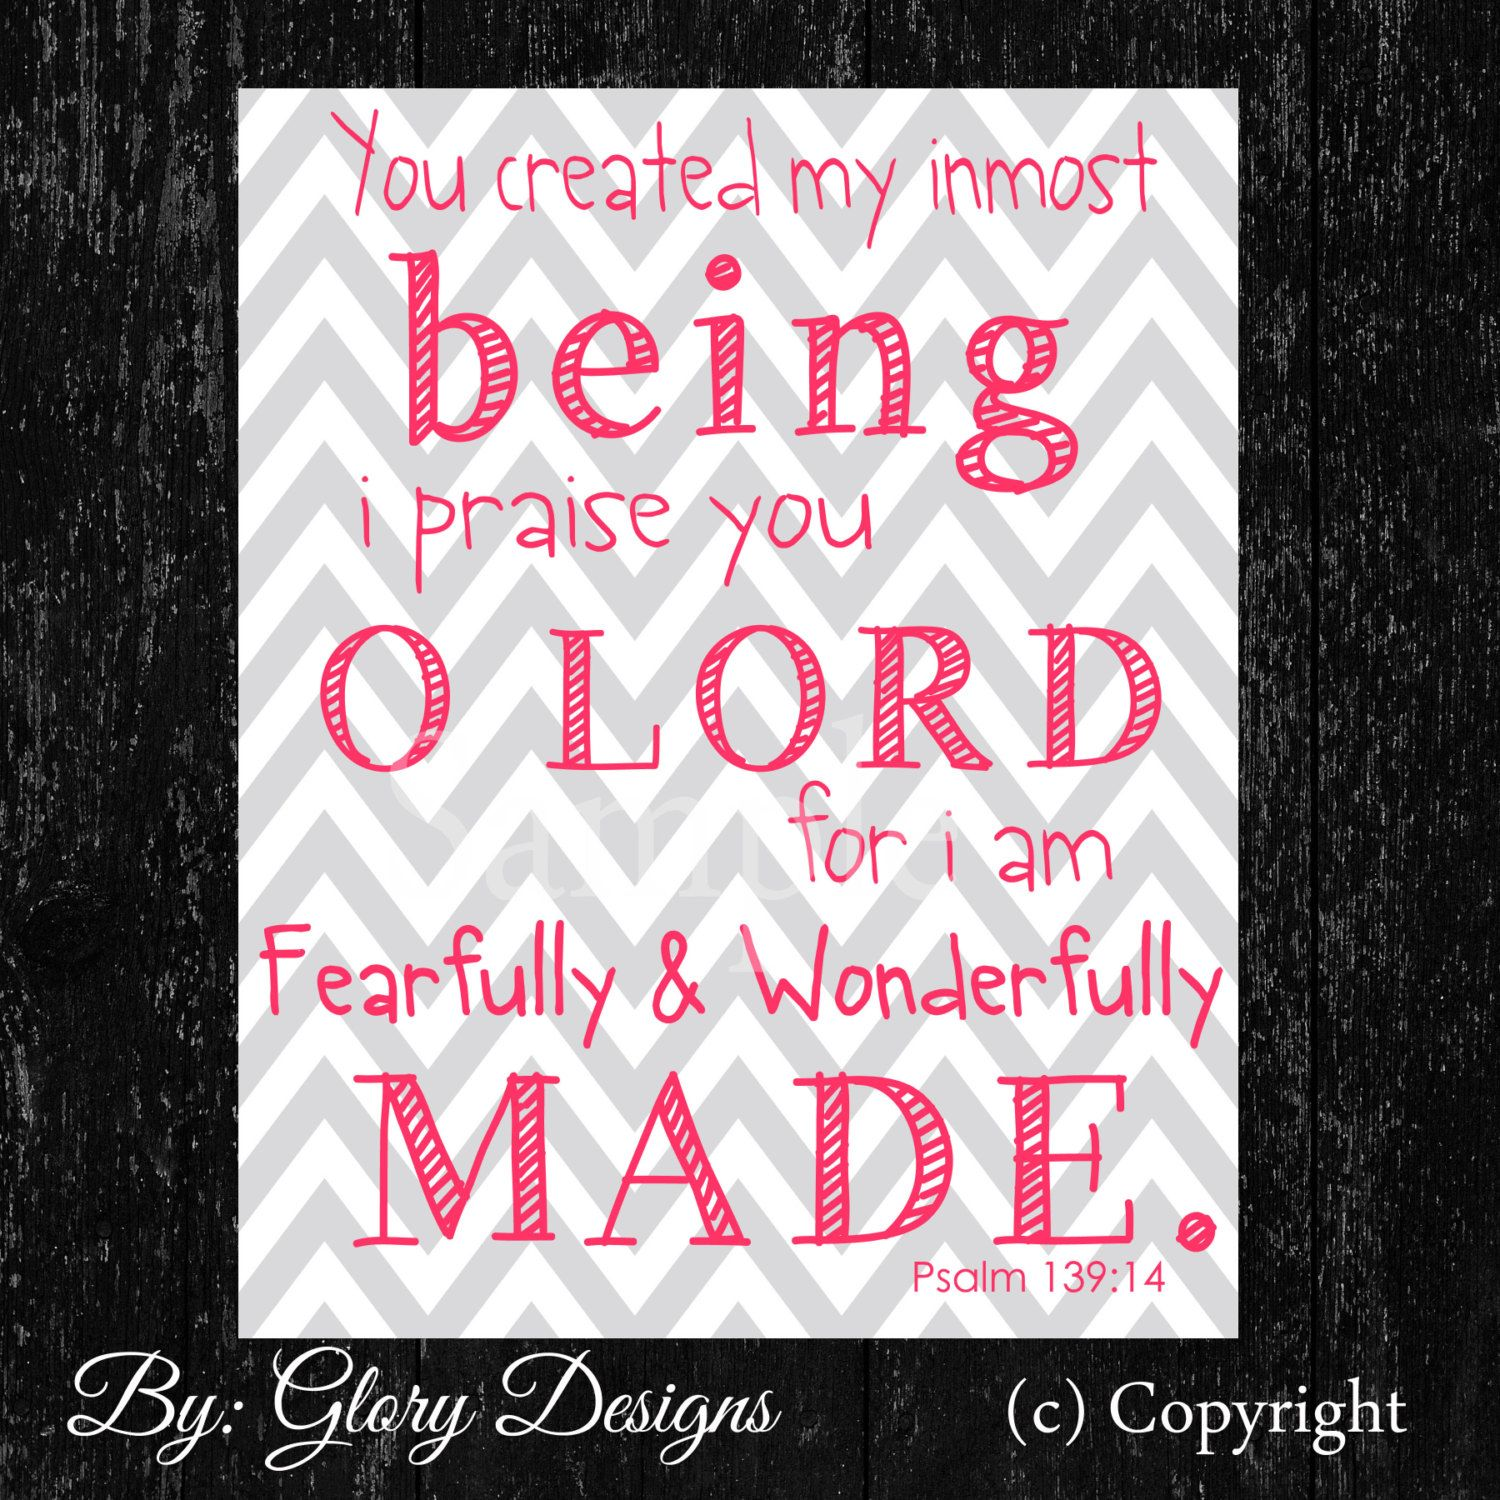 Church Nursery Pictures Google Search: For You Are Fearfully And Wonderfully Made Sign